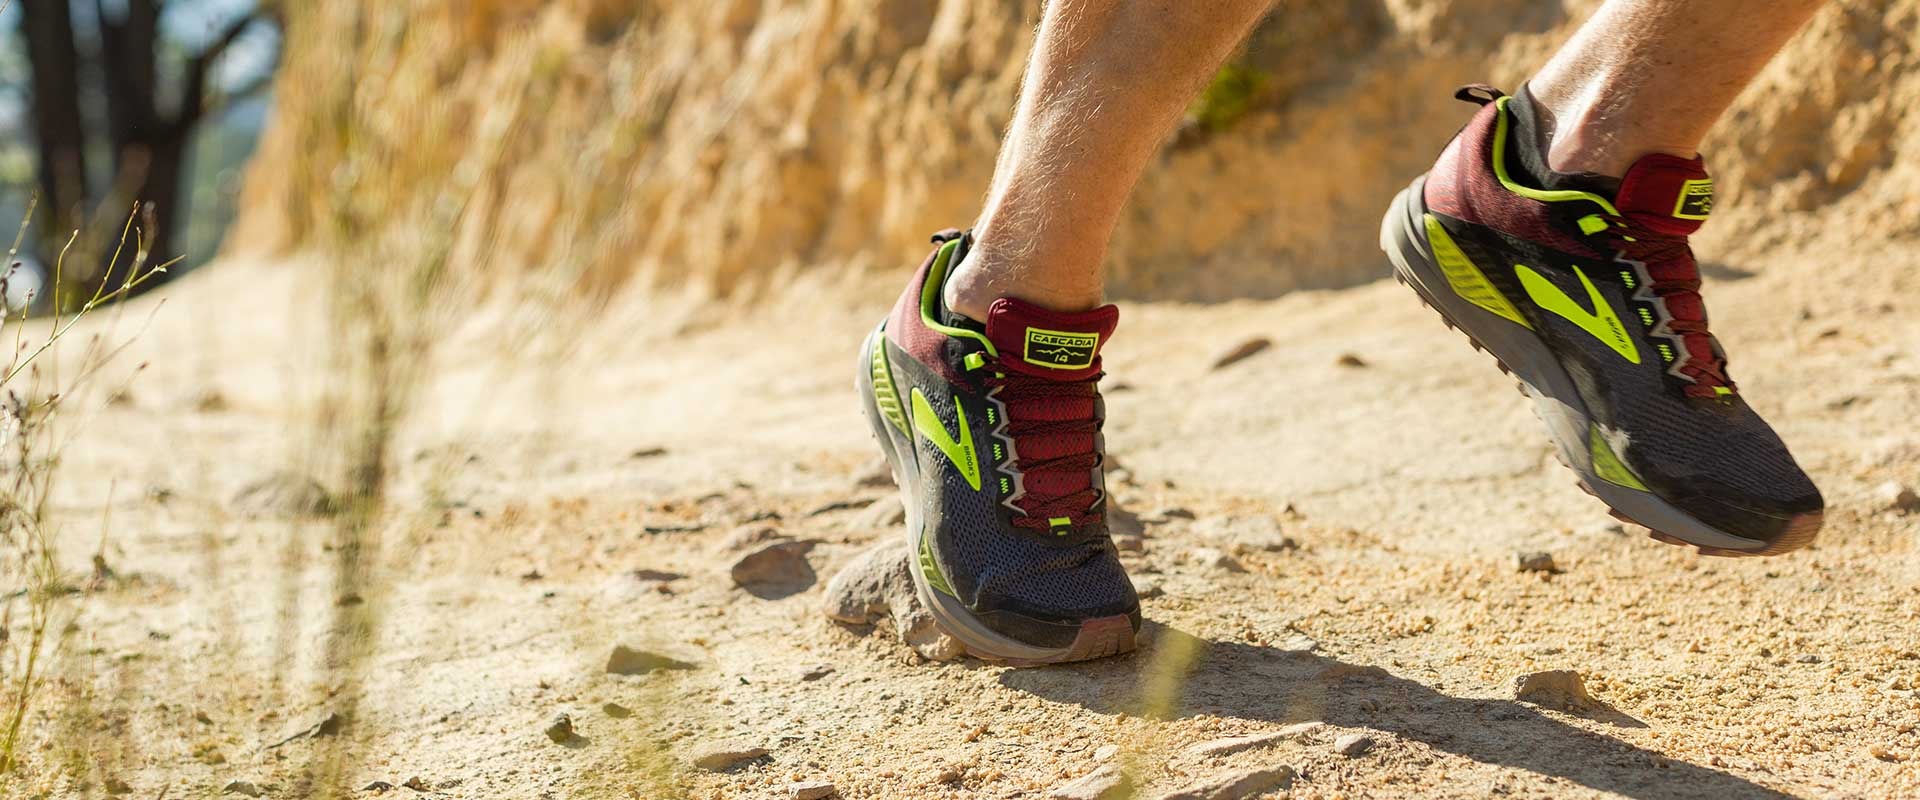 outlet for sale sale retailer reasonably priced Men's Trail Running Shoes